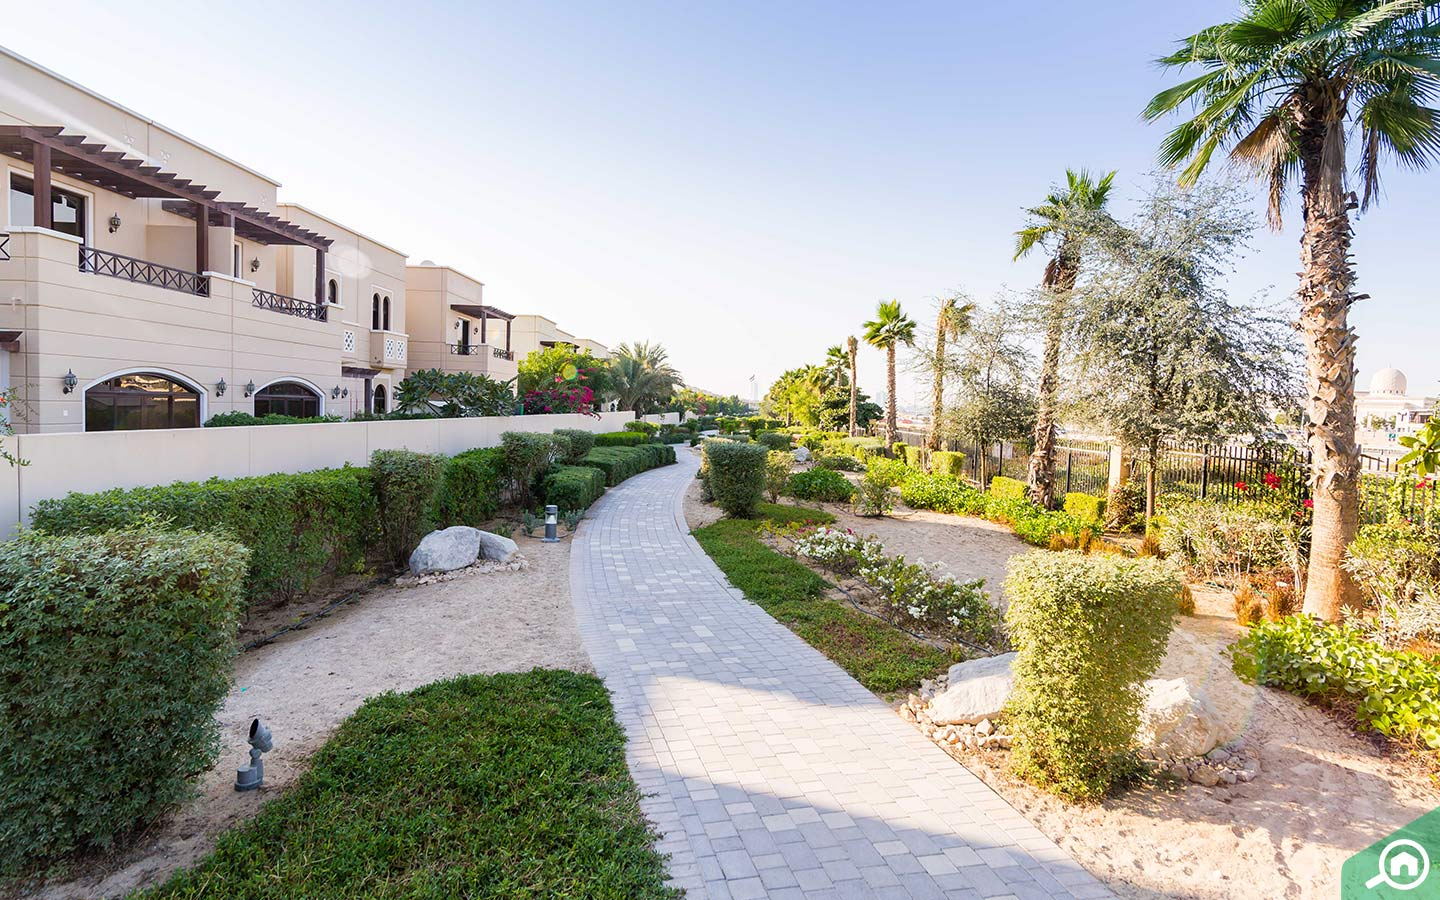 Street view of villas in Mudon, one of the Dubai residential areas near the Expo 2020 site